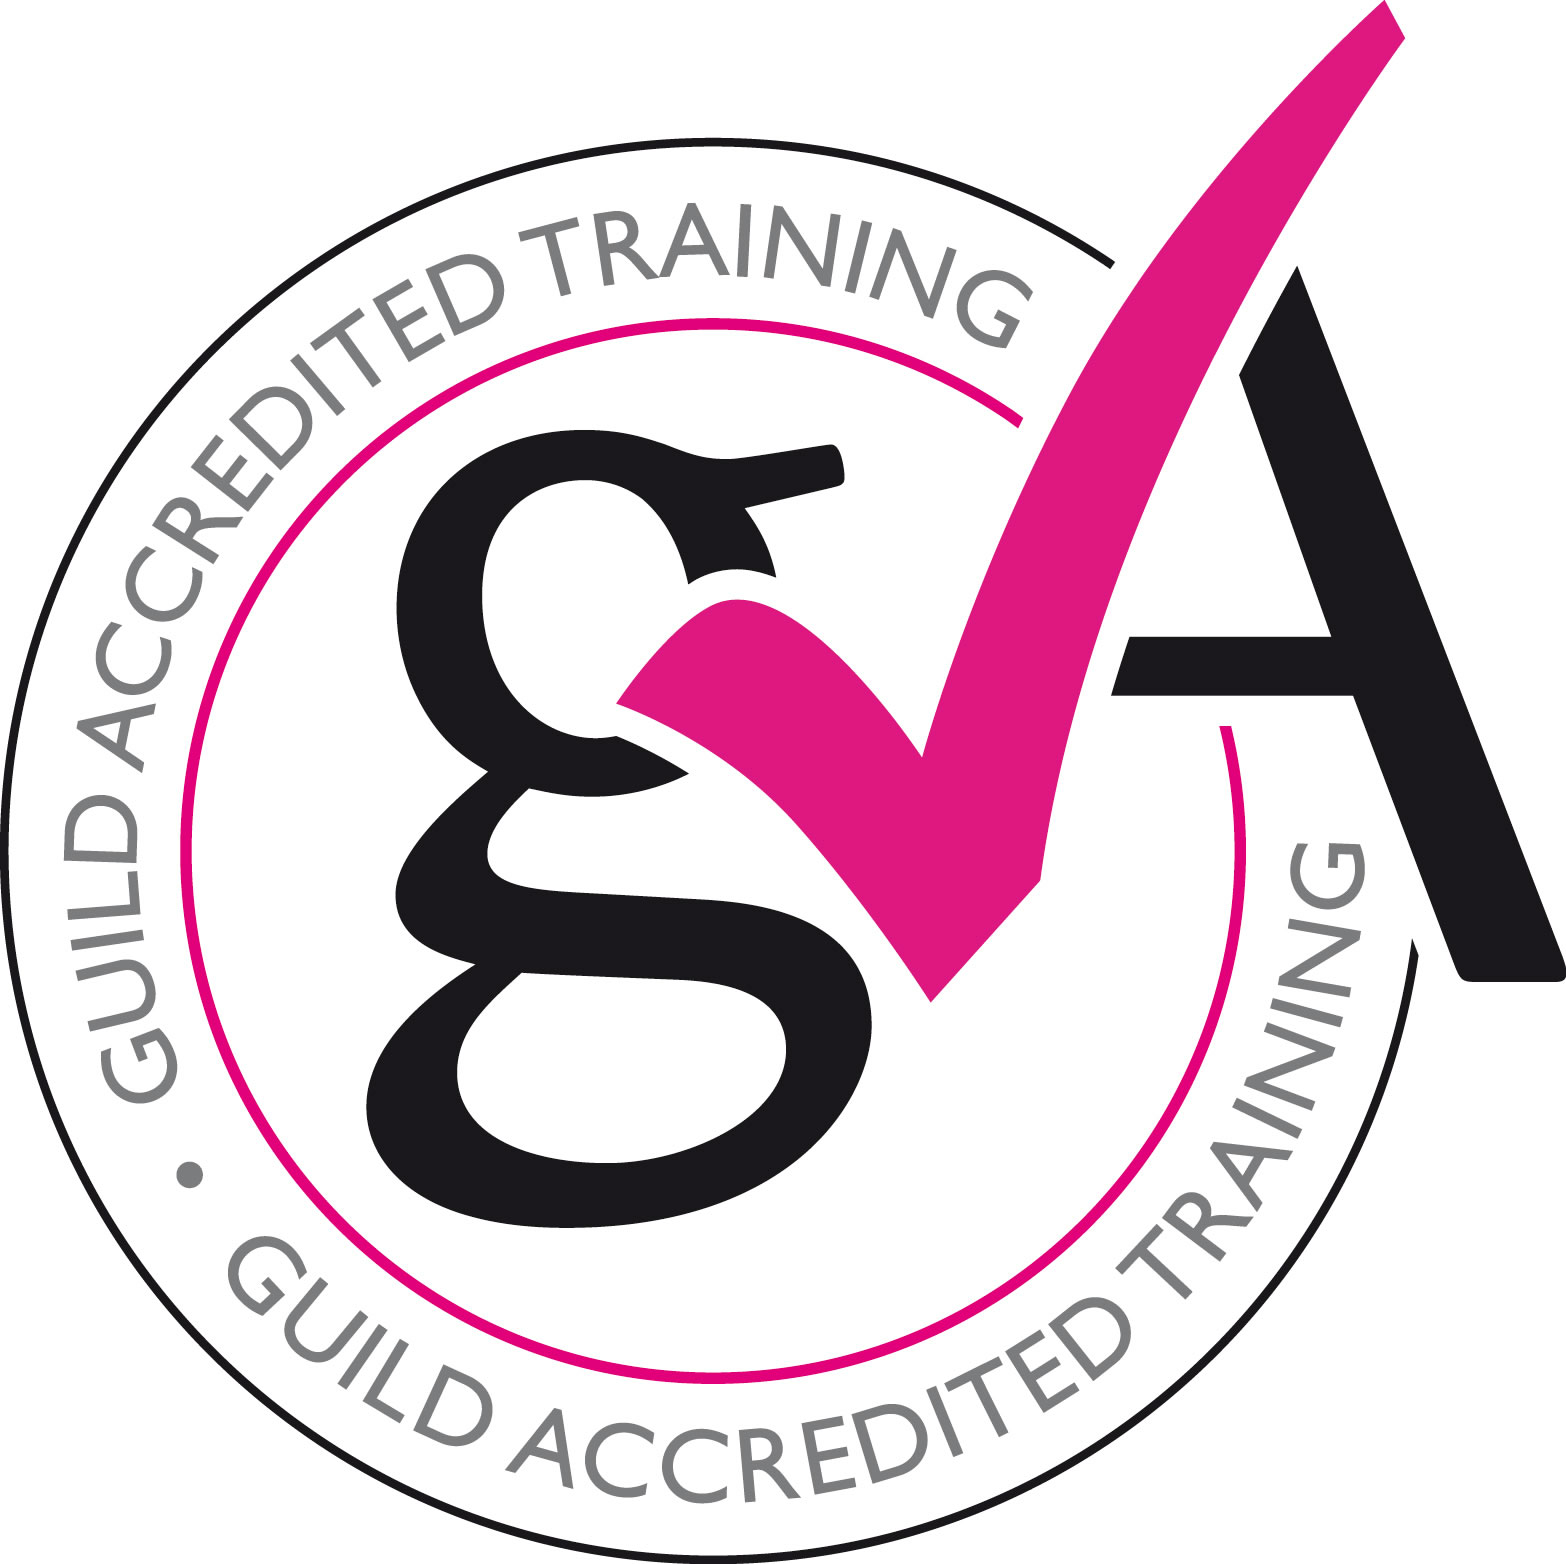 Guild Accreditation Stamp 2015_300dpi